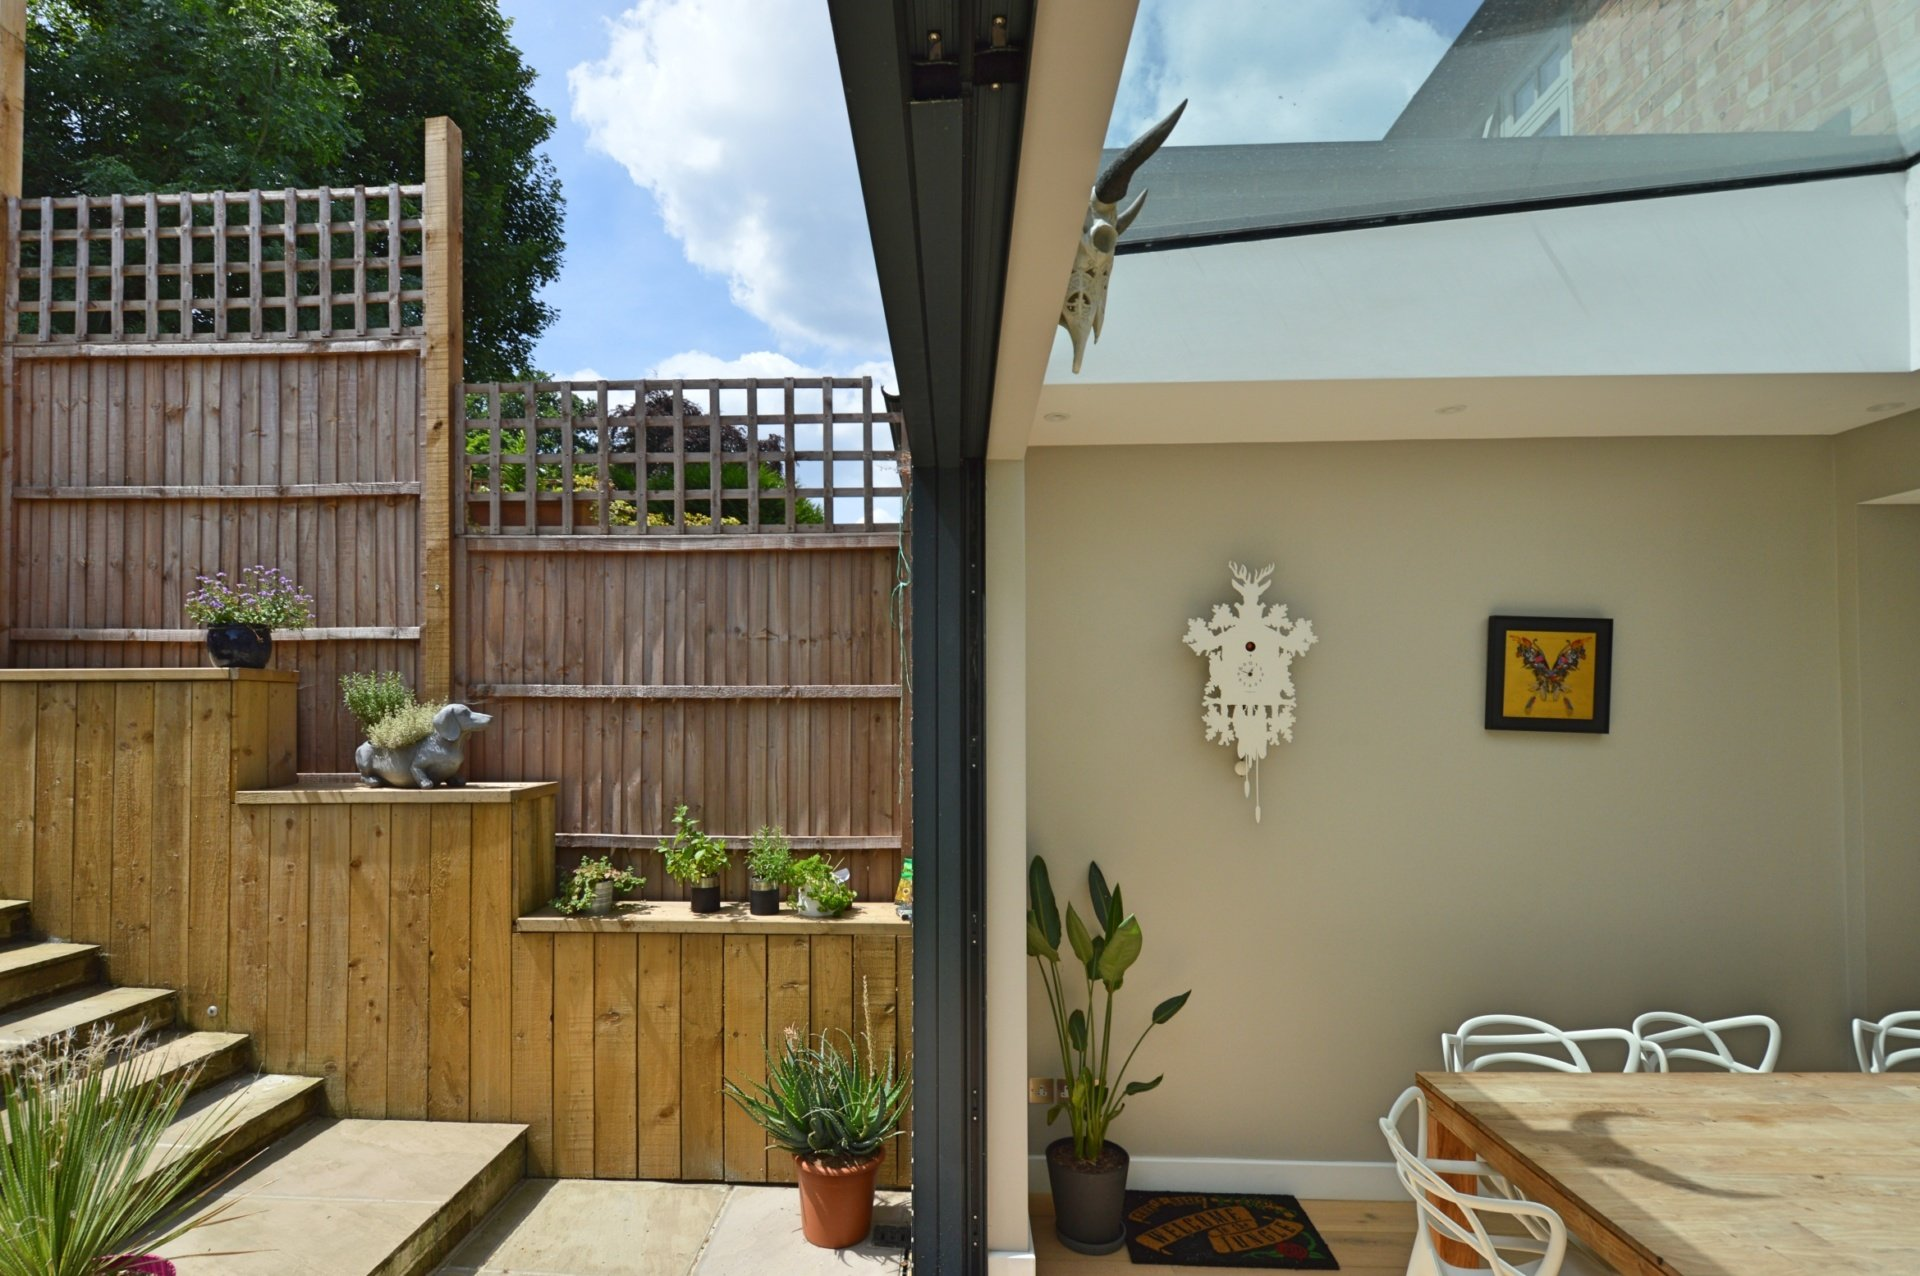 Architect designed rear house extension Highgate Haringey N6 – Inside out Highgate, Haringey N6 | Rear house extension